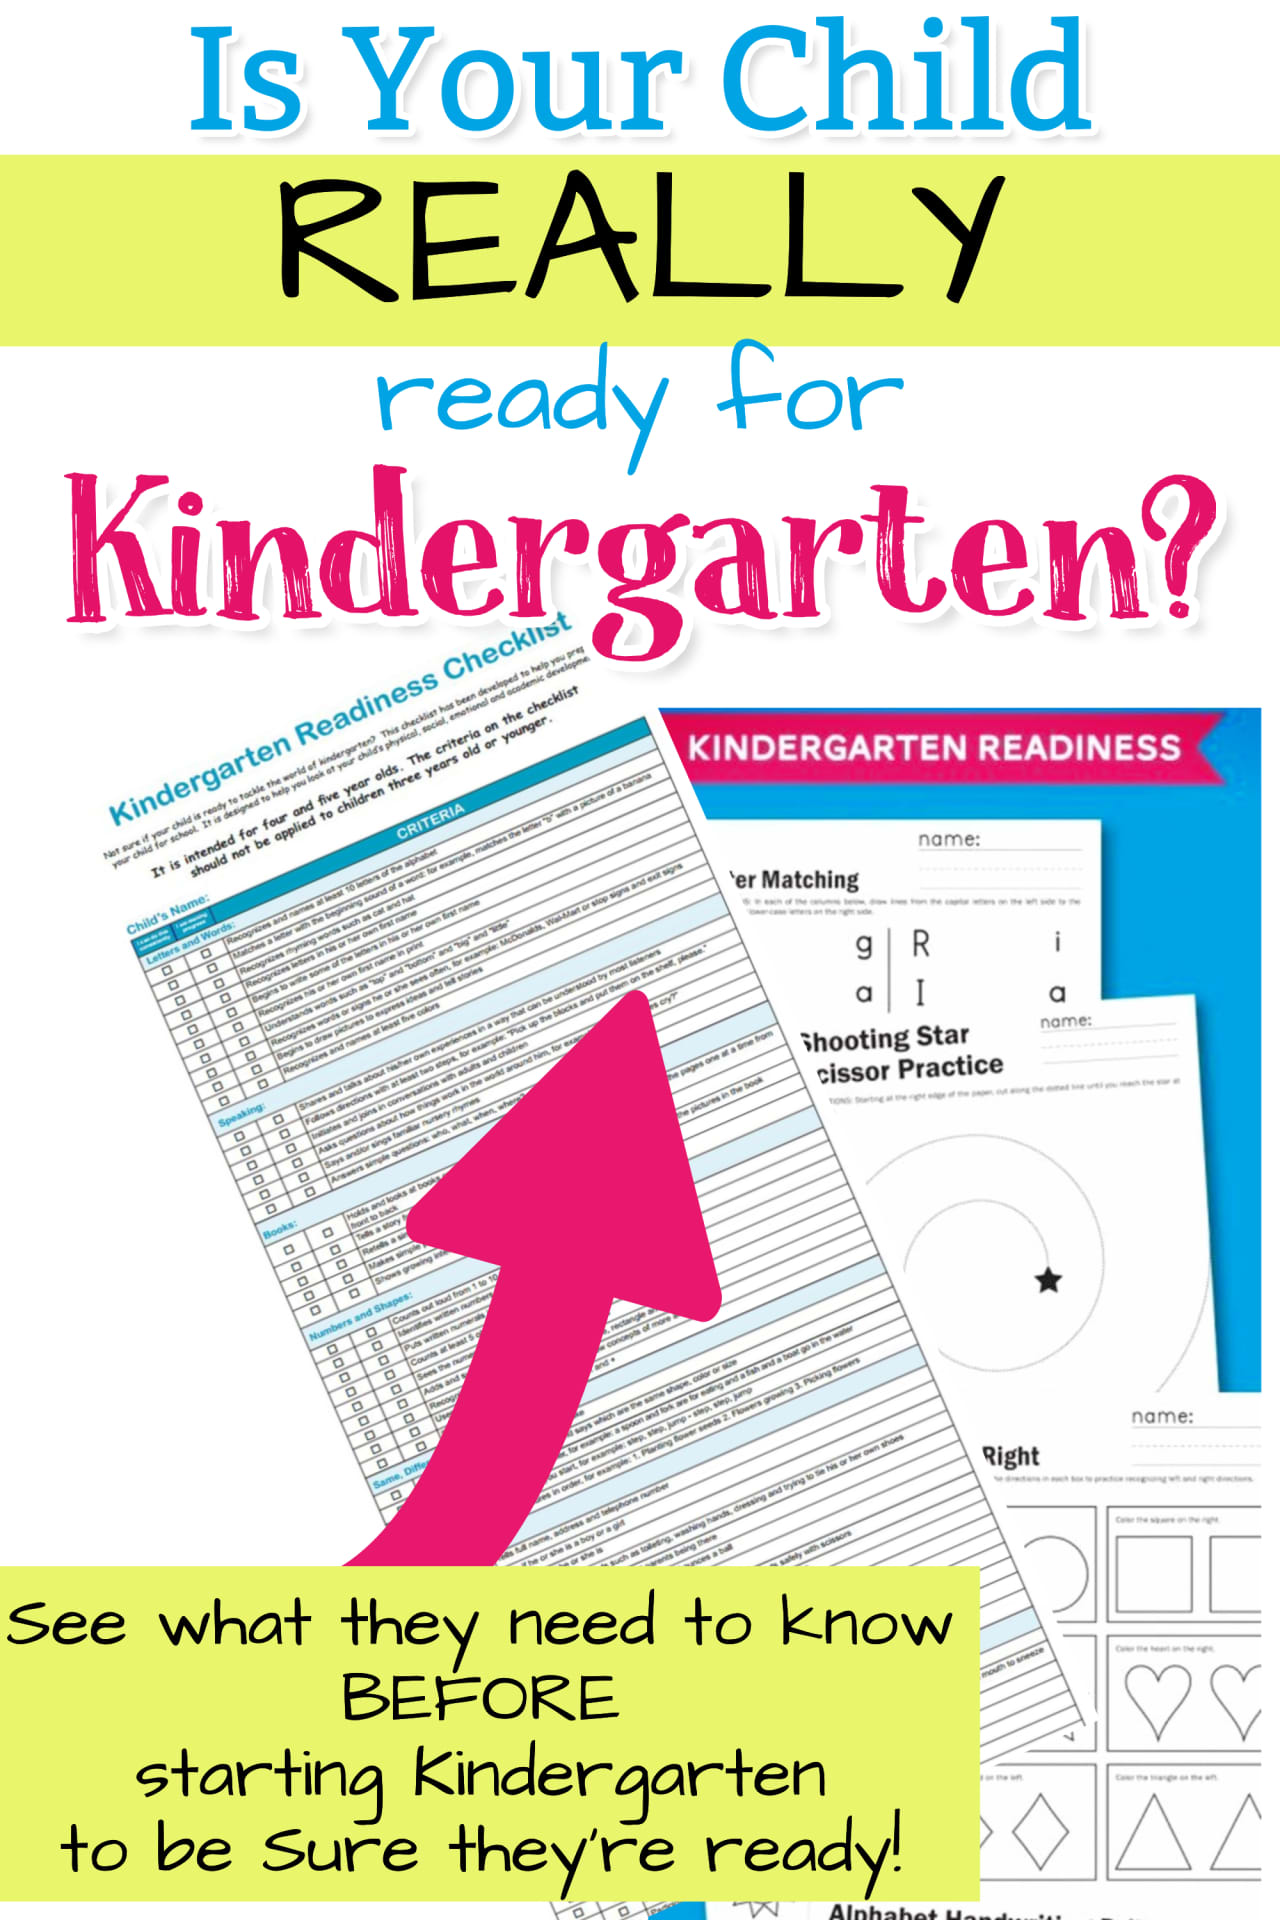 Kindergarten Readiness Checklists - free printable checklists for parents - Advice for Moms and Dads who have a child getting ready to start Kindergarten - Is your child REALLY prepared to start Kindergarten this school year?  See these Kindergarten Readiness checklists and worksheets to be SURE your child is set for success in Kindergarten.